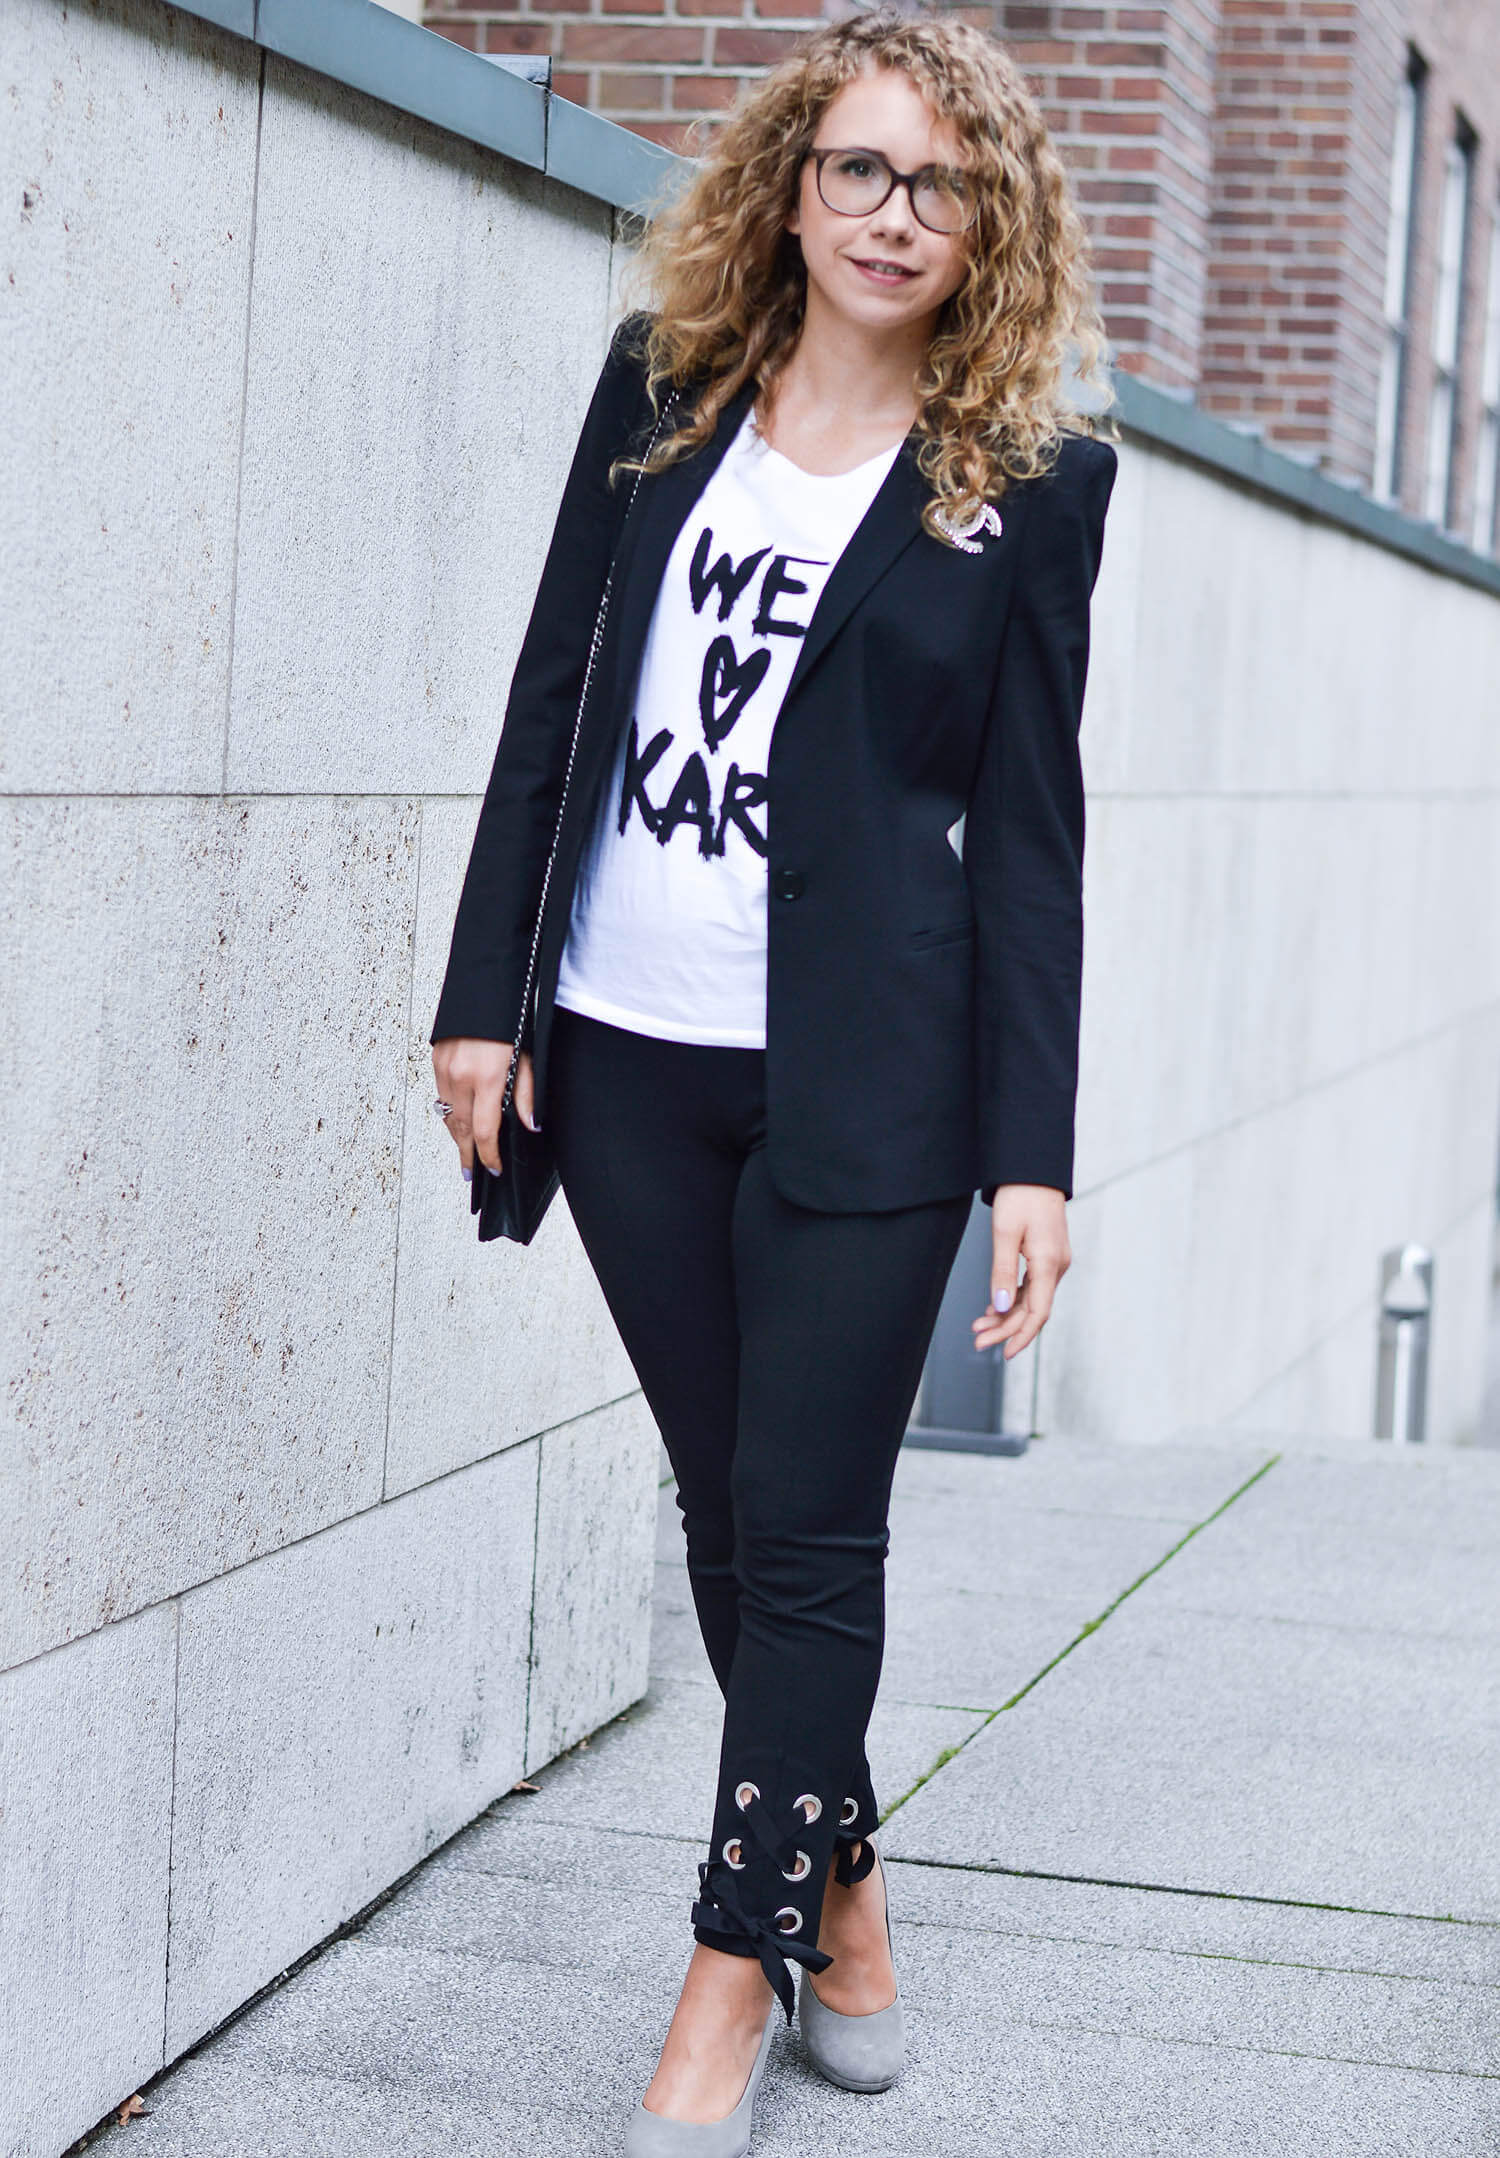 Kationette-fashionblog-nrw-Outfit-Black-and-White-Bow-Pants-Blazer-Lagerfeld-Shirt-streetstyle